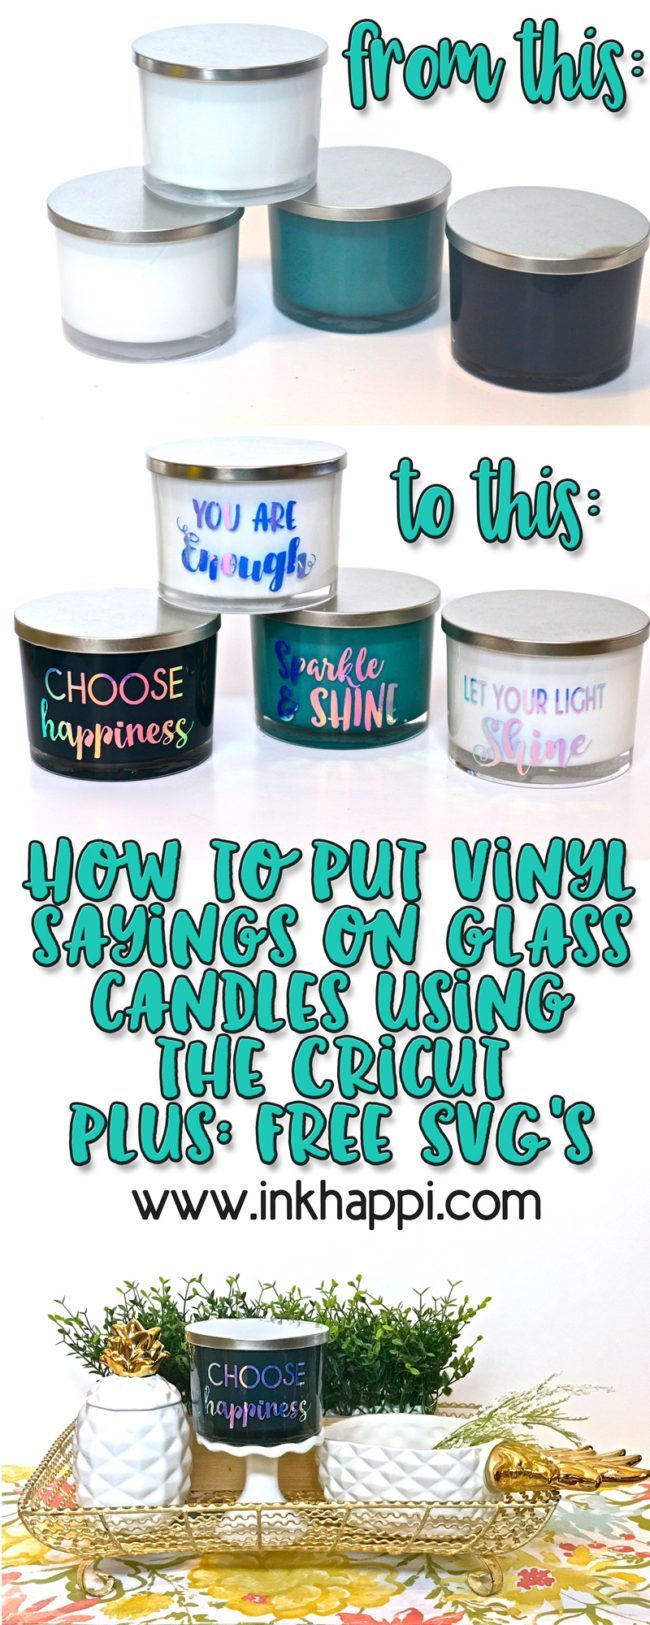 How to put Vinyl sayings on glass candles using Cricut. Free SVG files!